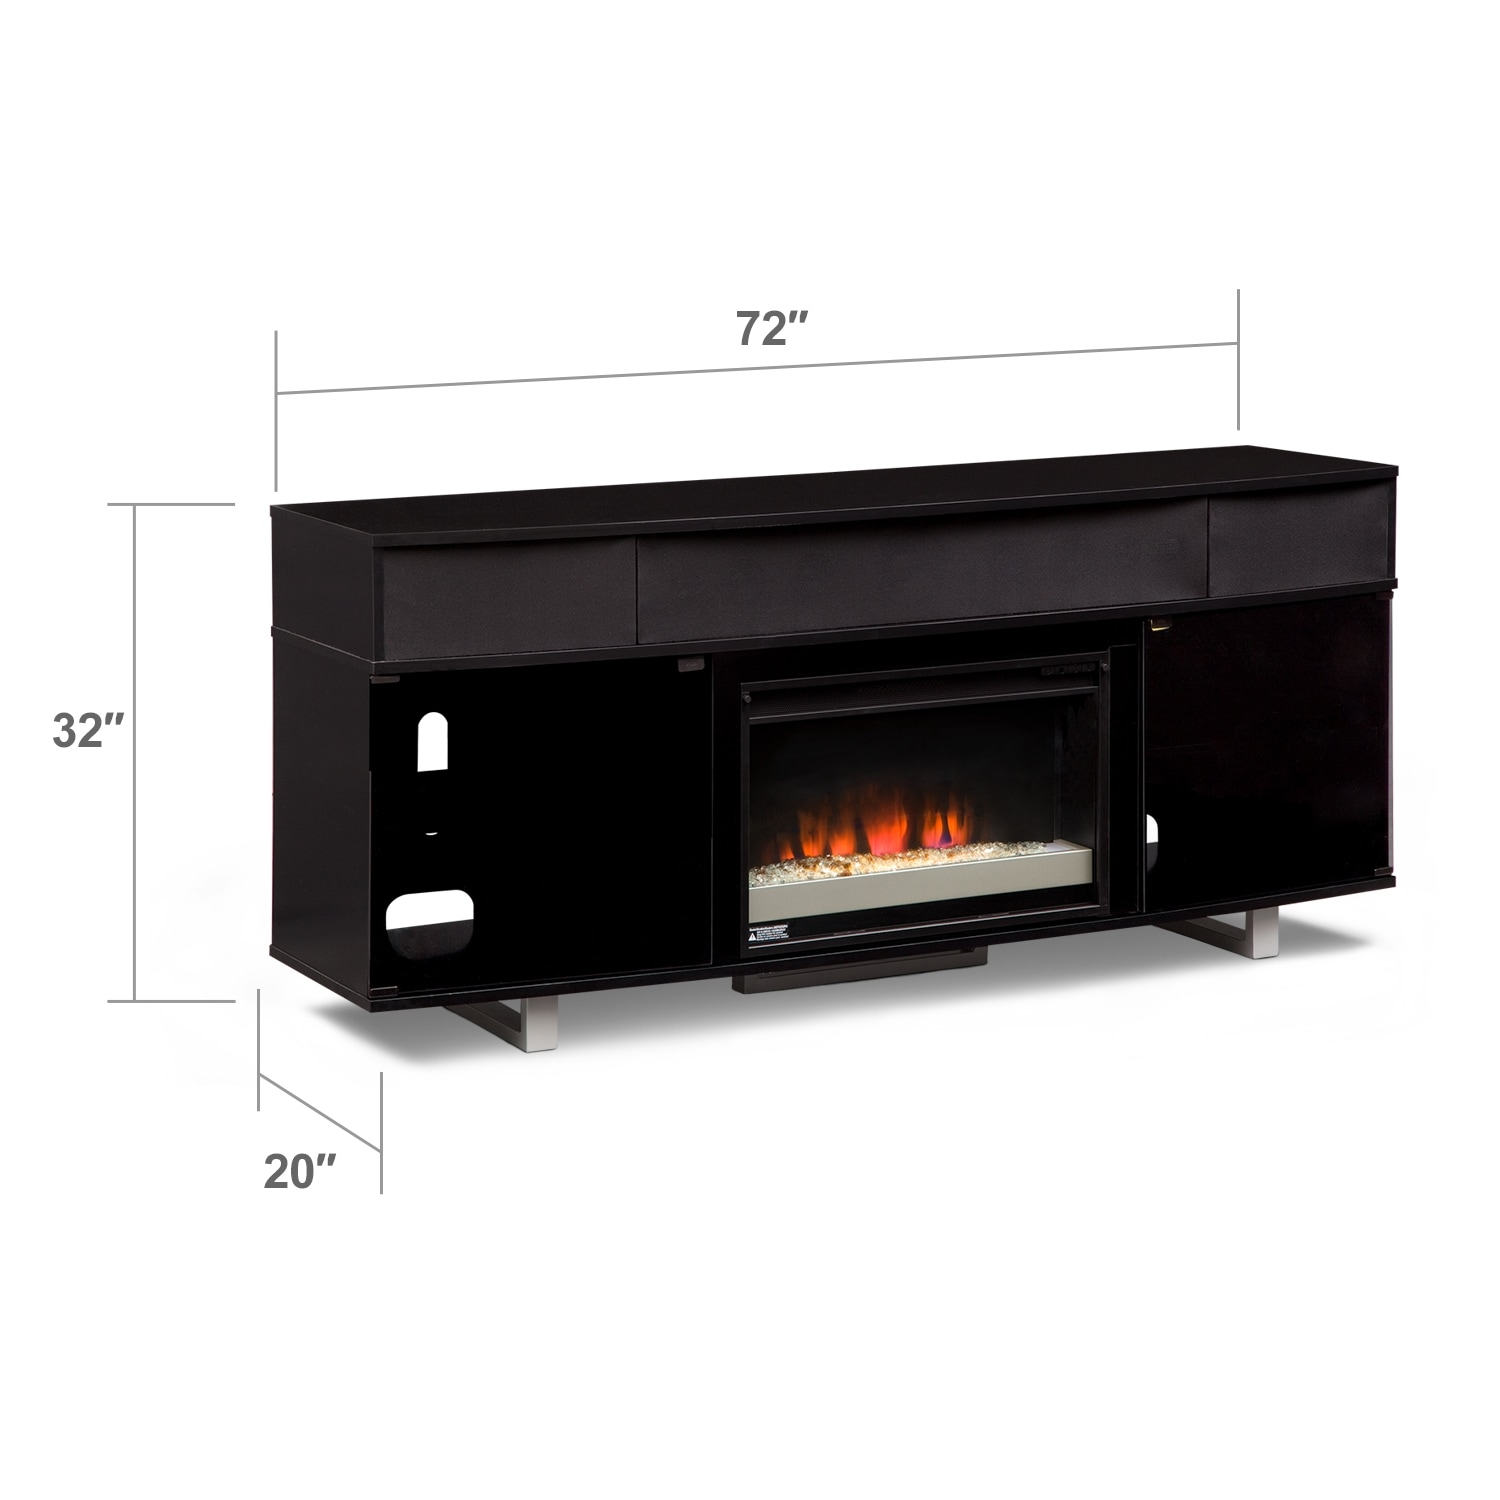 Pacer Entertainment Wall Units Fireplace Tv Stand With Sound Bar Value City Furniture